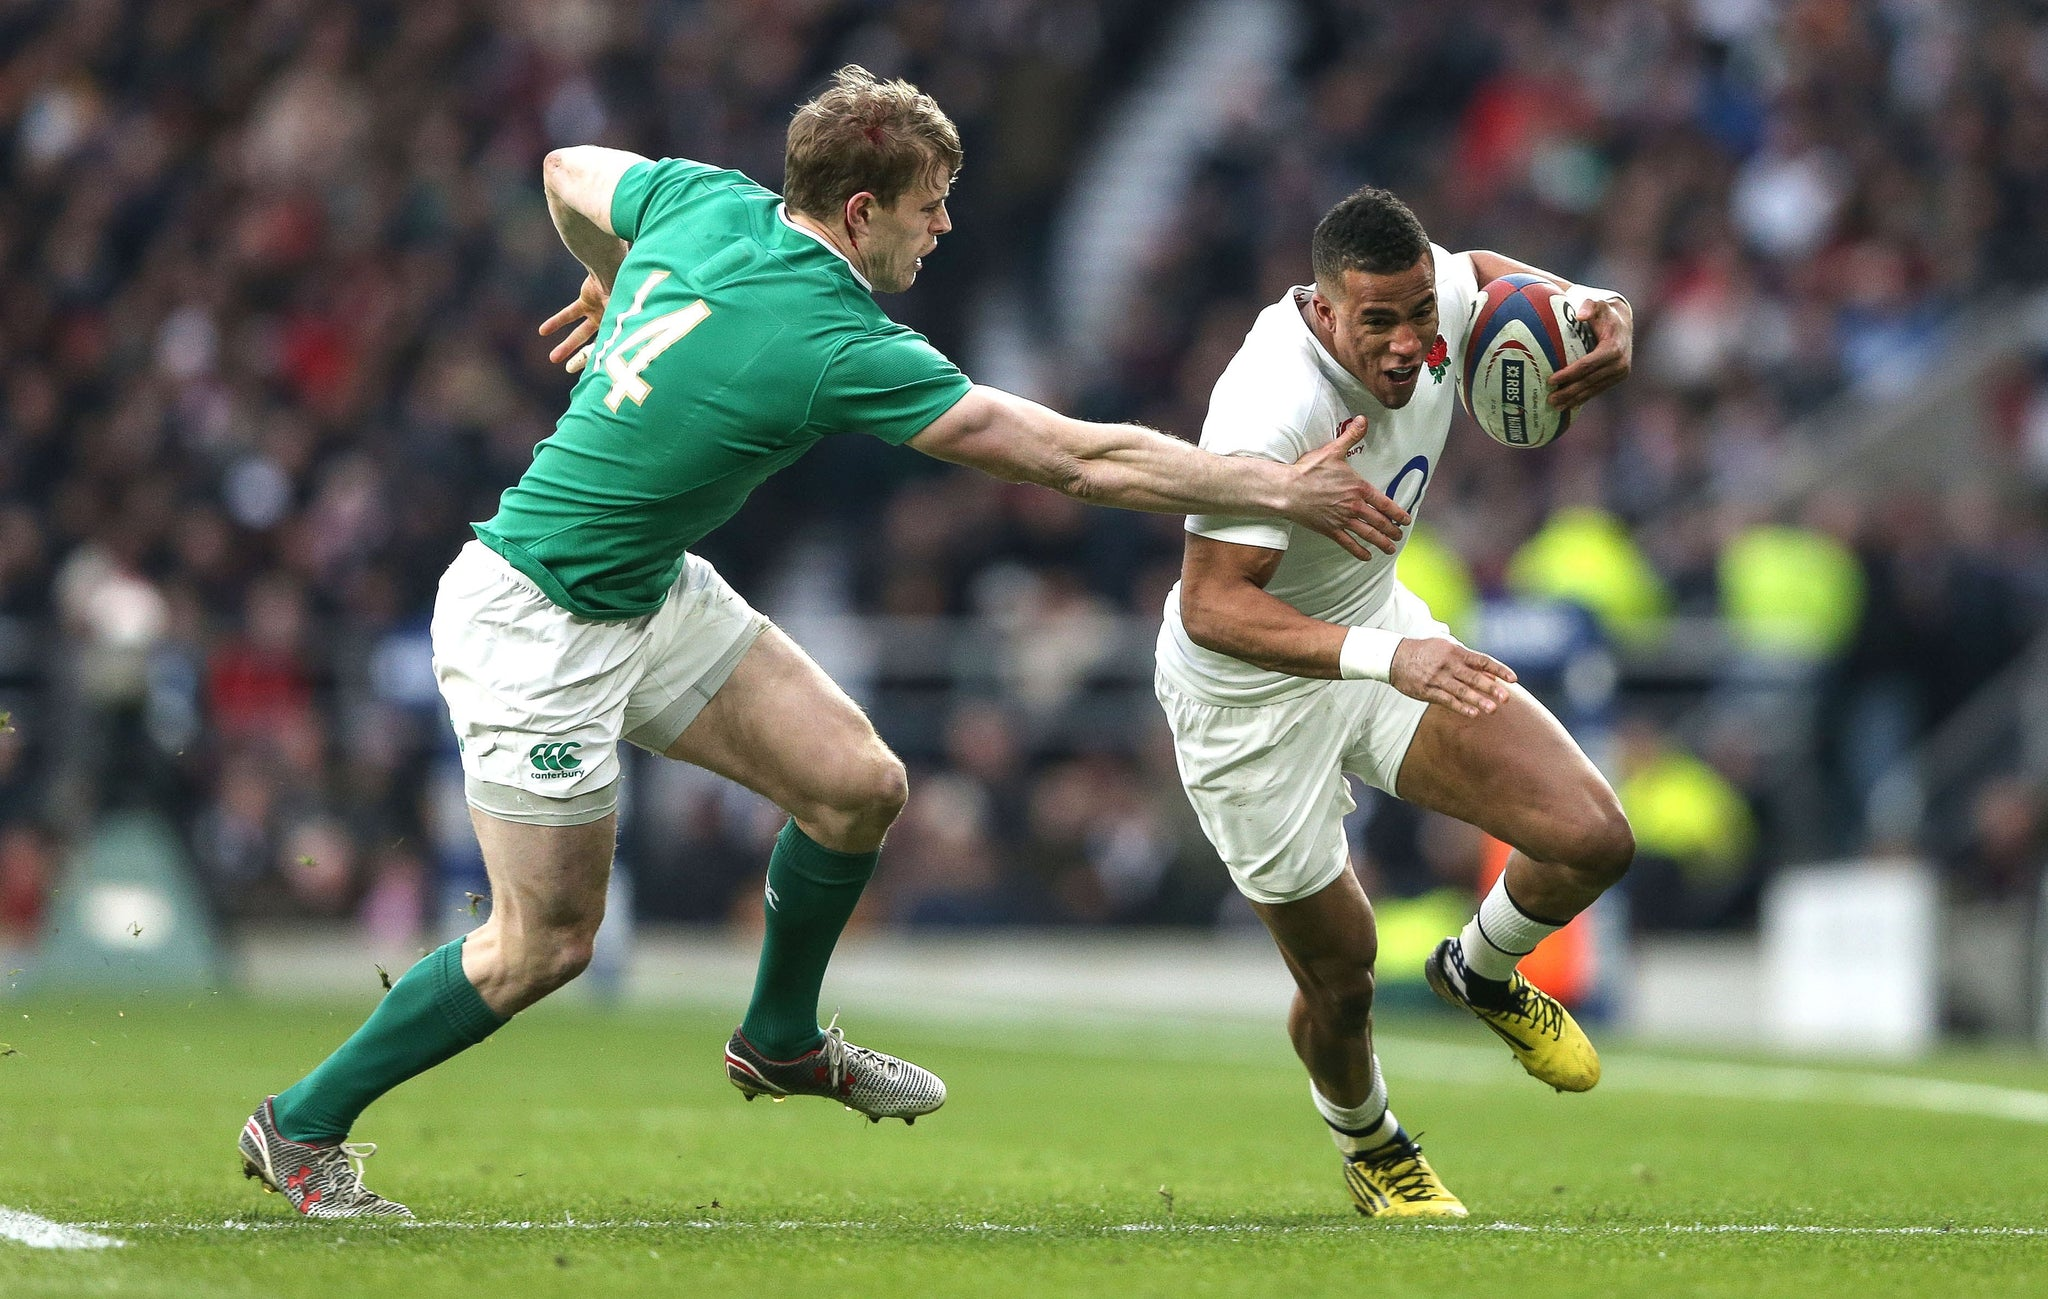 Six Nations Rugby - Ireland Vs England 2019 - Front Row Events